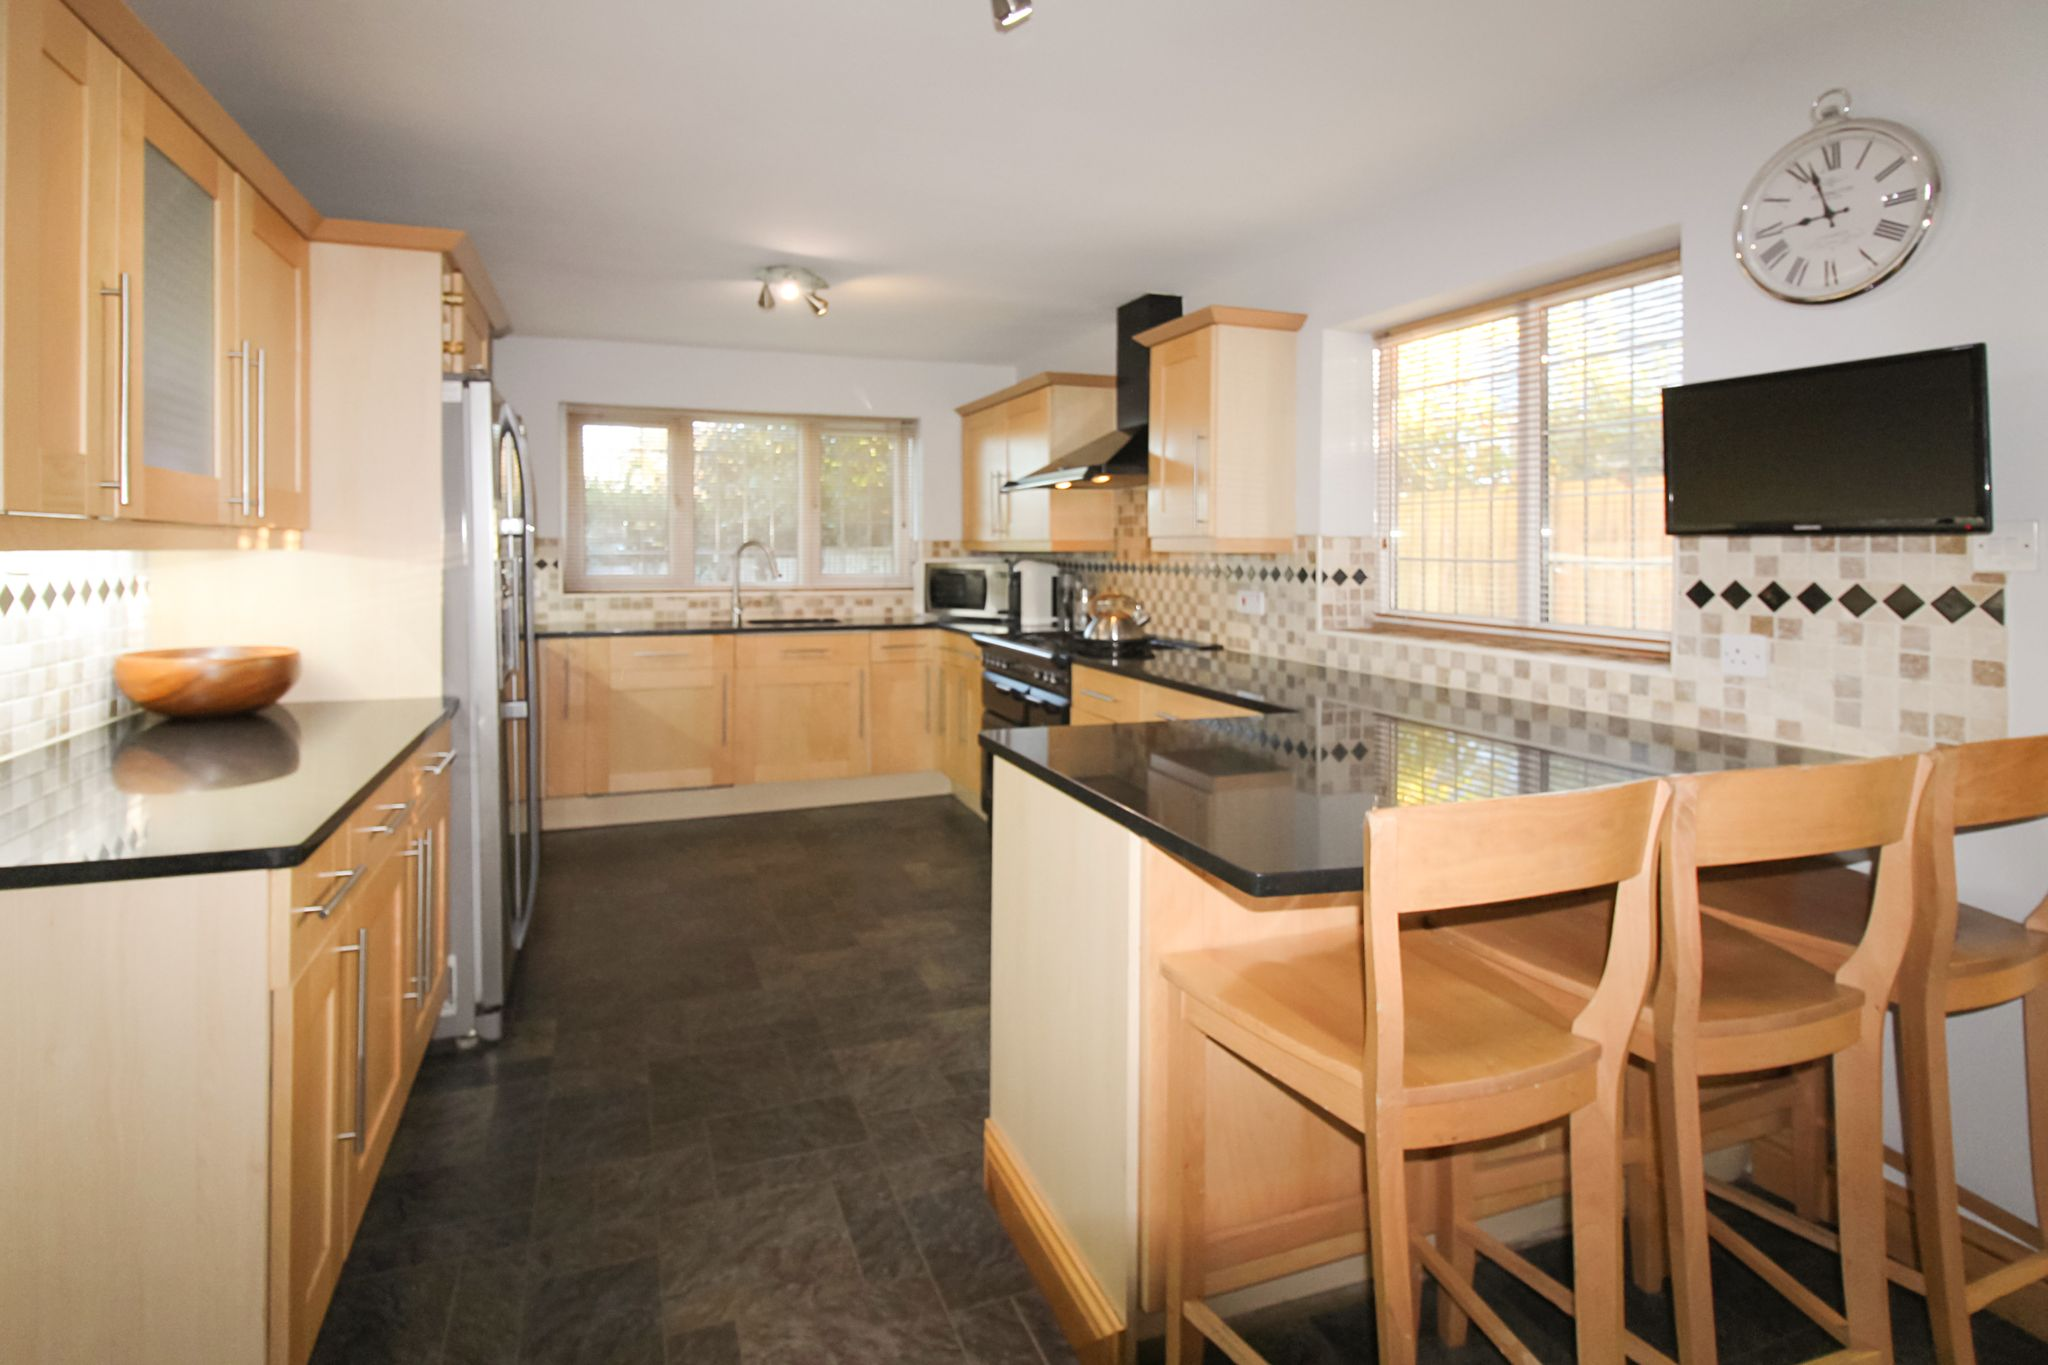 6 bedroom detached house SSTC in Solihull - Photograph 7.